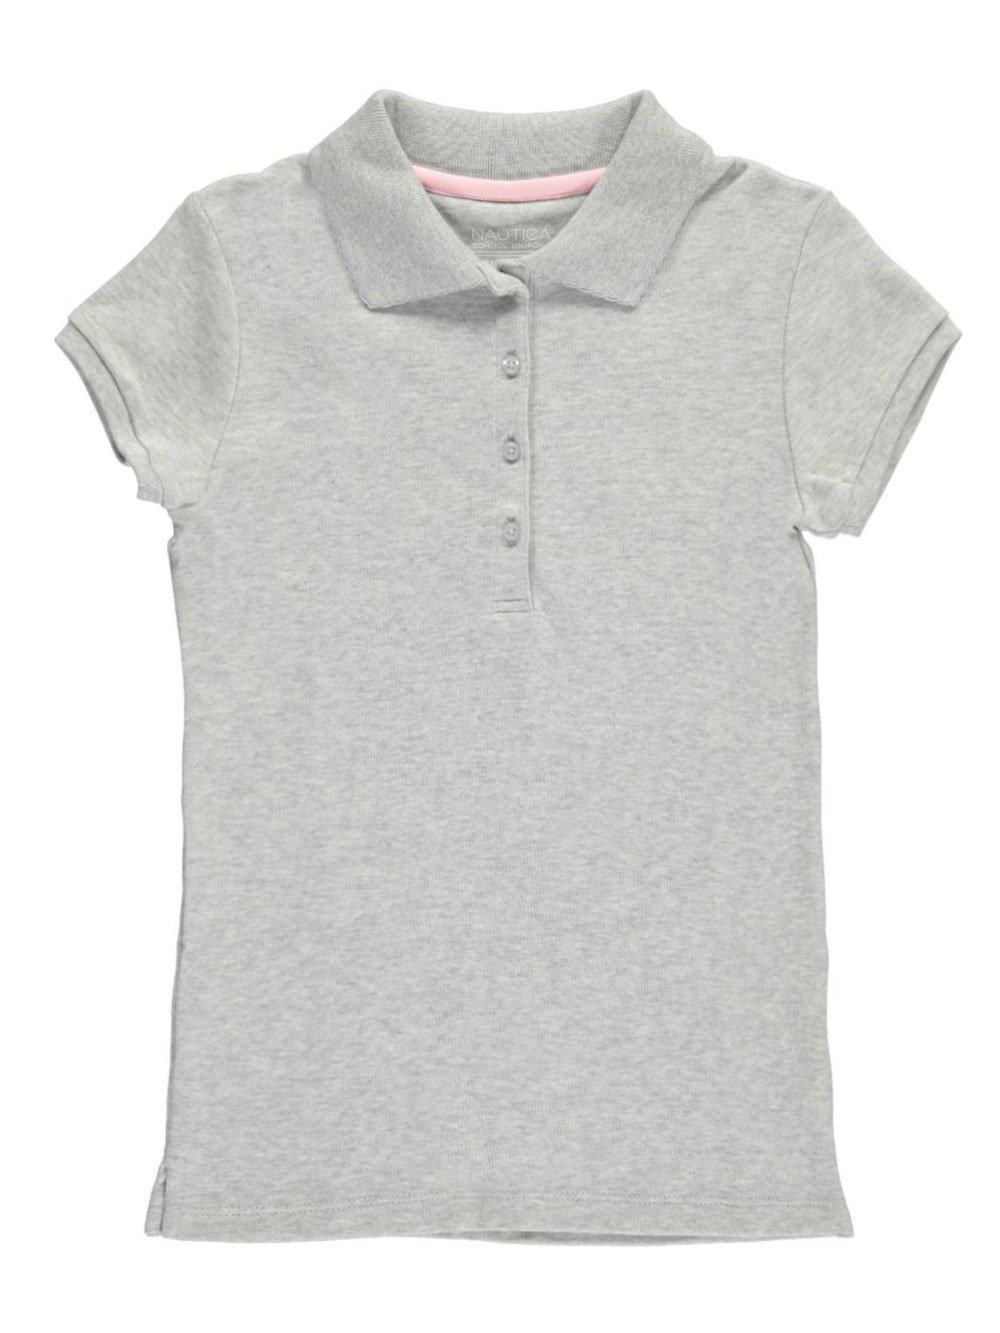 Nautica Girls Uniform Short Sleeve Polo Picot Stitch Collar IZ6093N